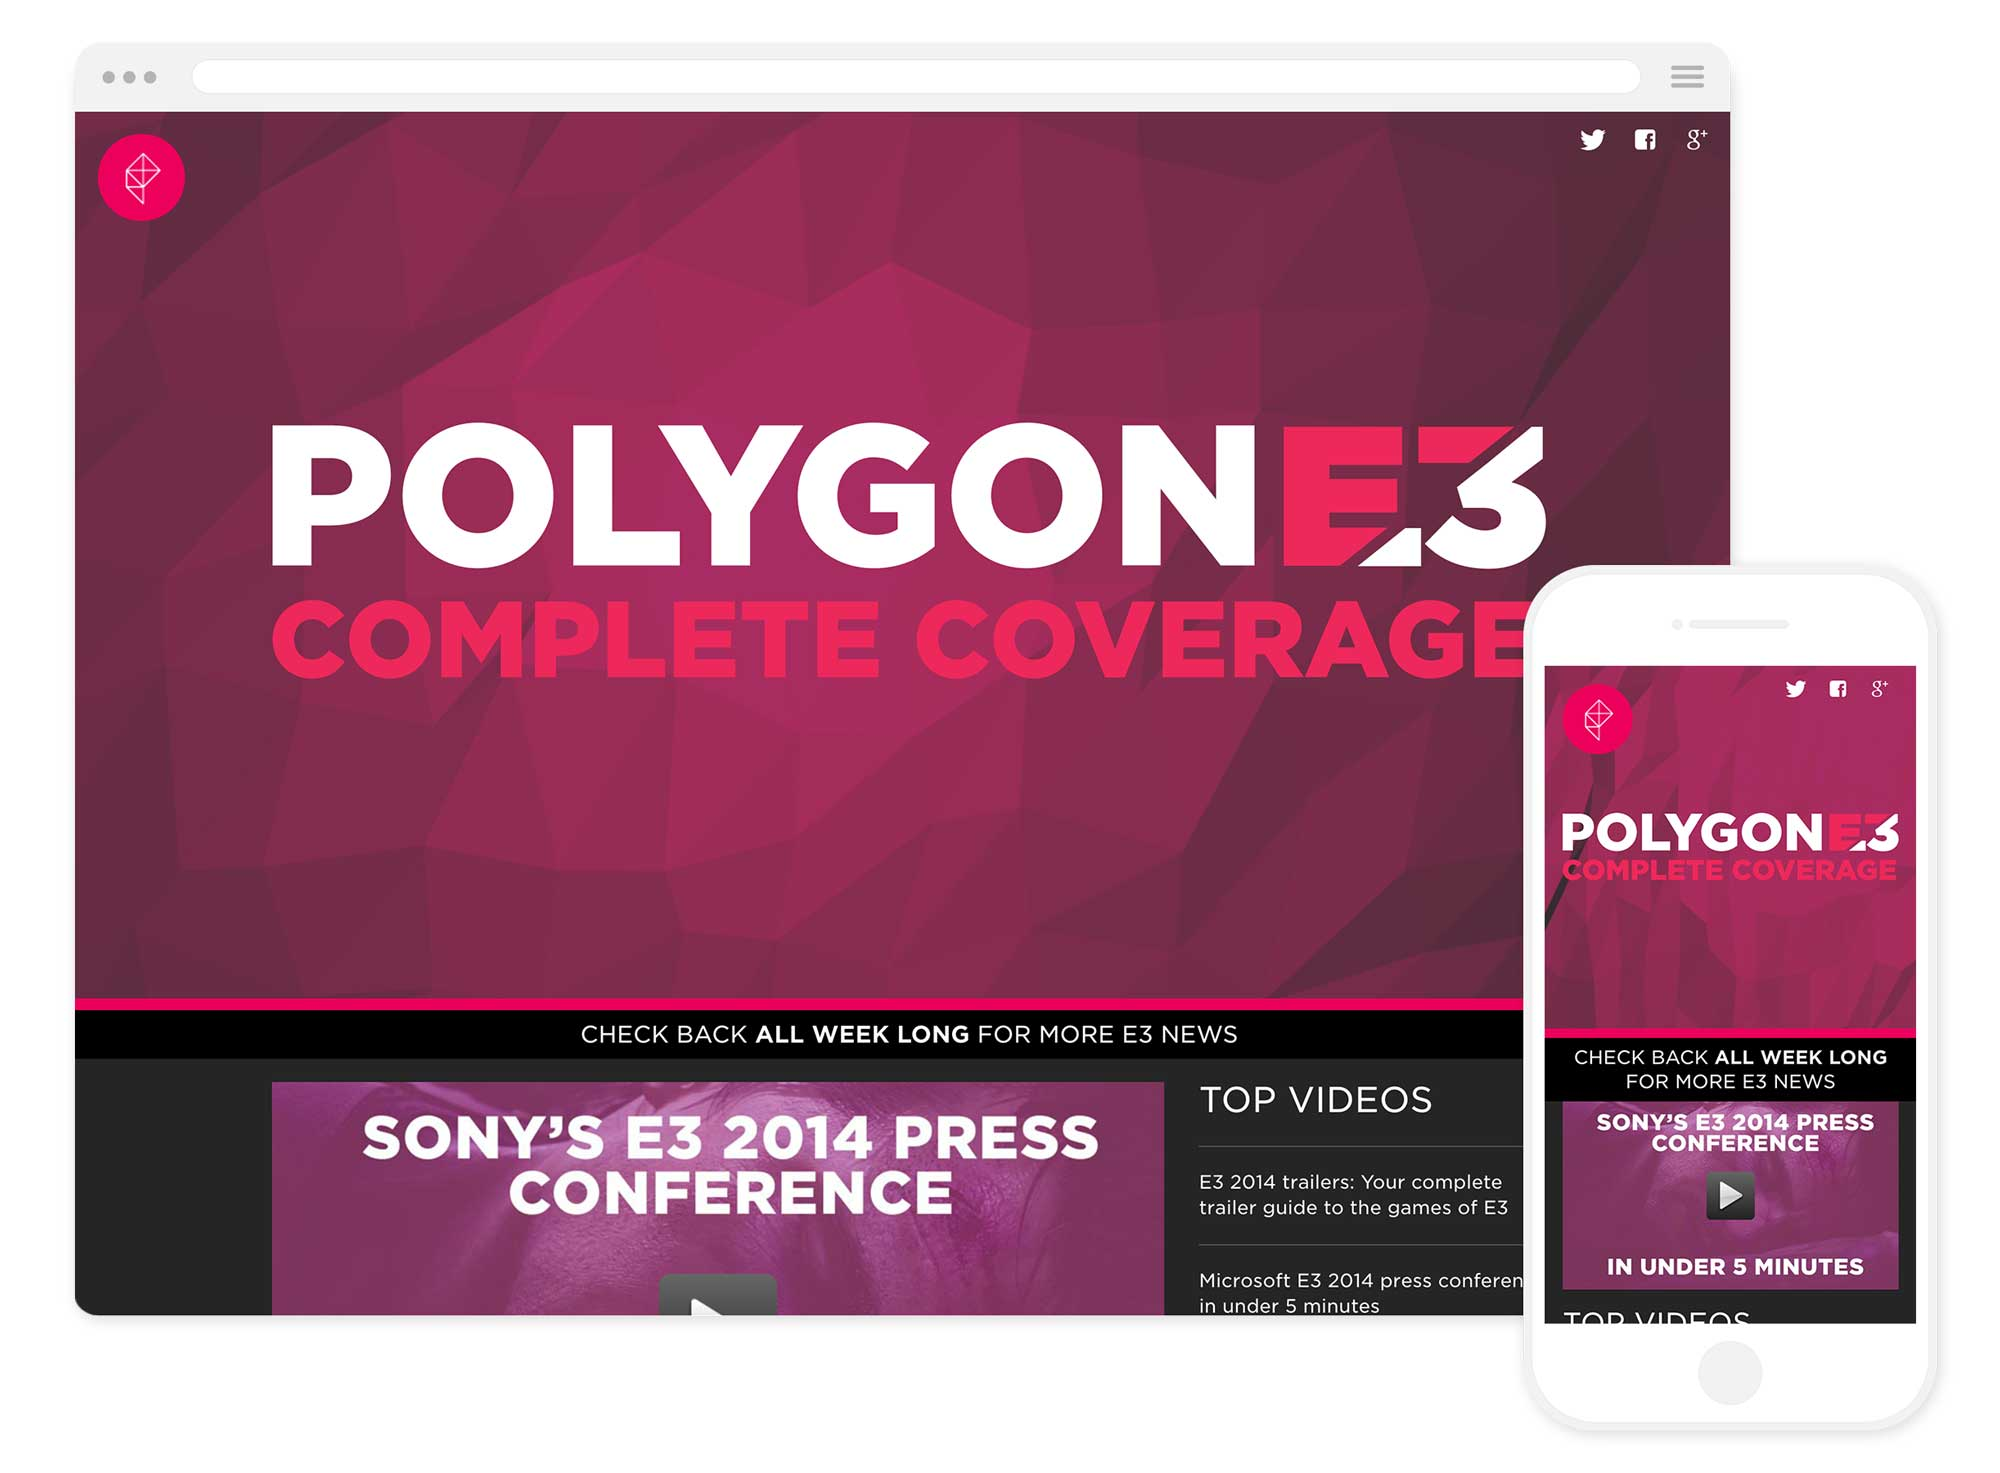 Image of the Polygon E3 website